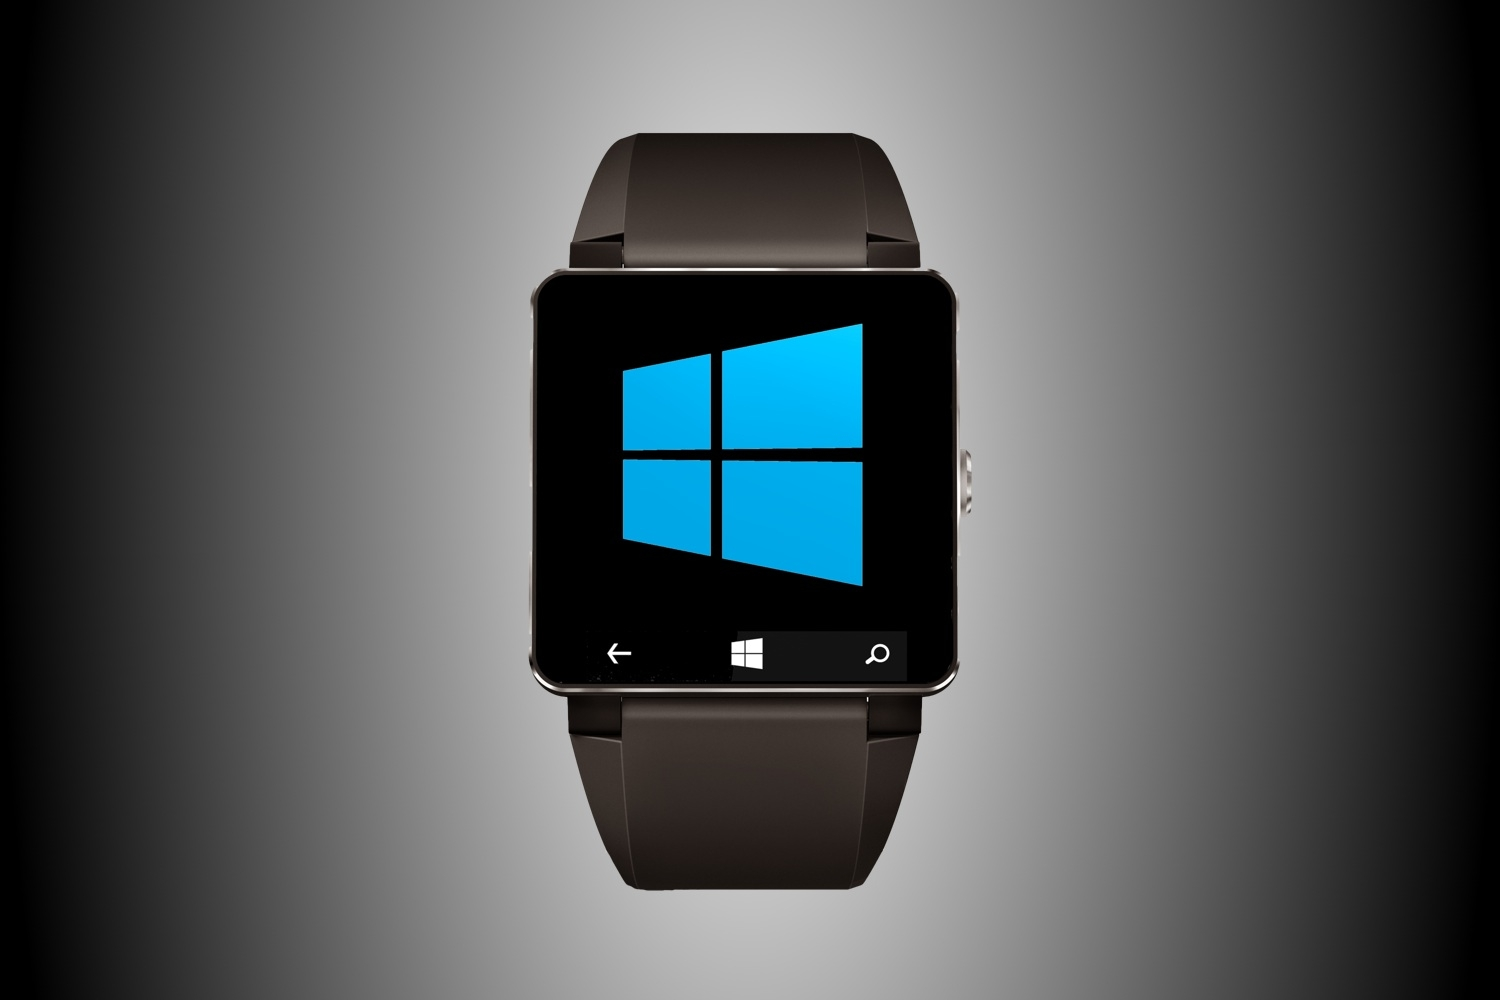 Windows On A Watch?